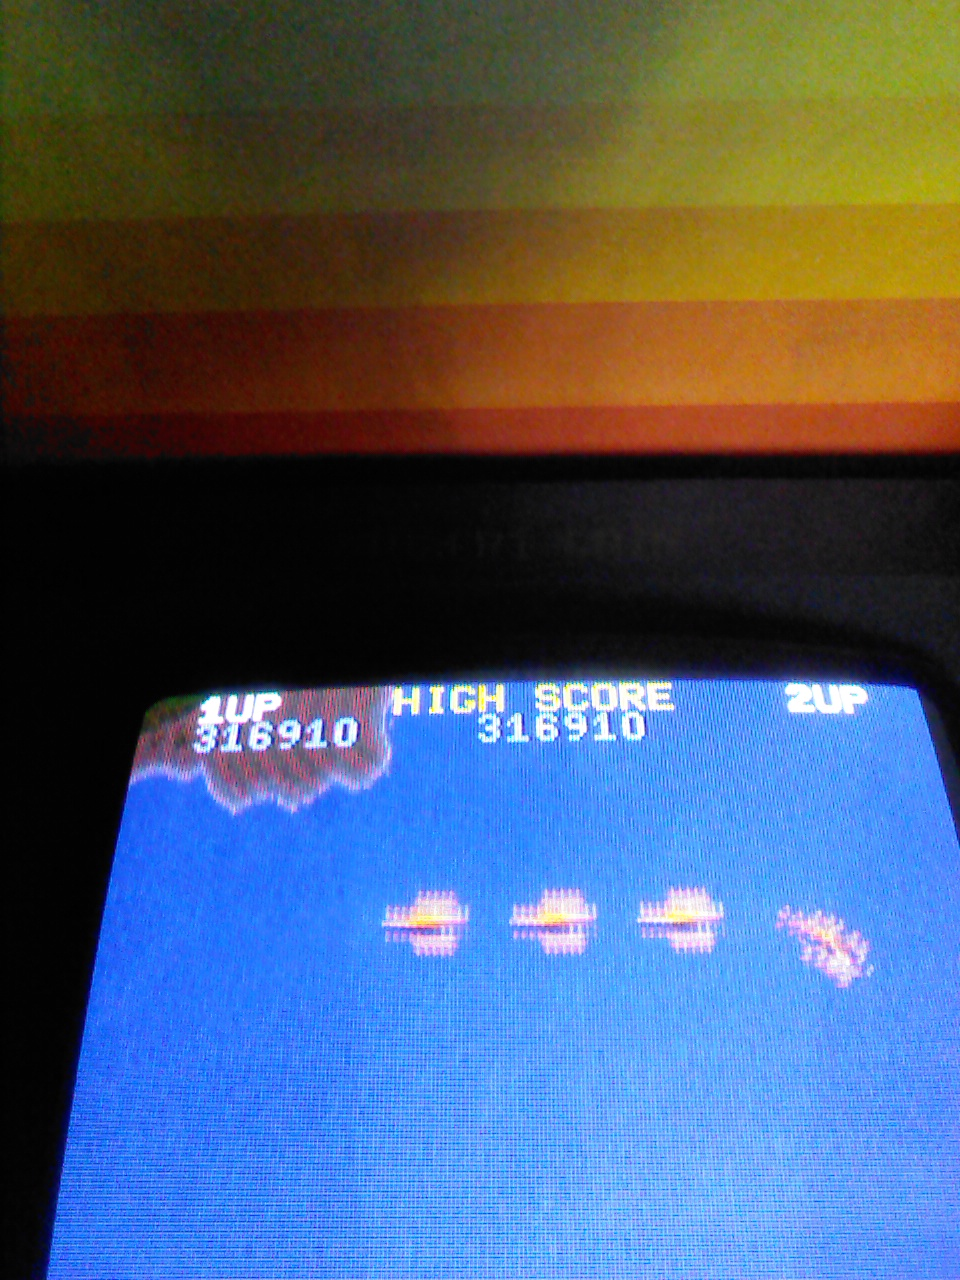 blagger: 1942 [1942] (Arcade Emulated / M.A.M.E.) 316,910 points on 2014-06-16 07:33:41